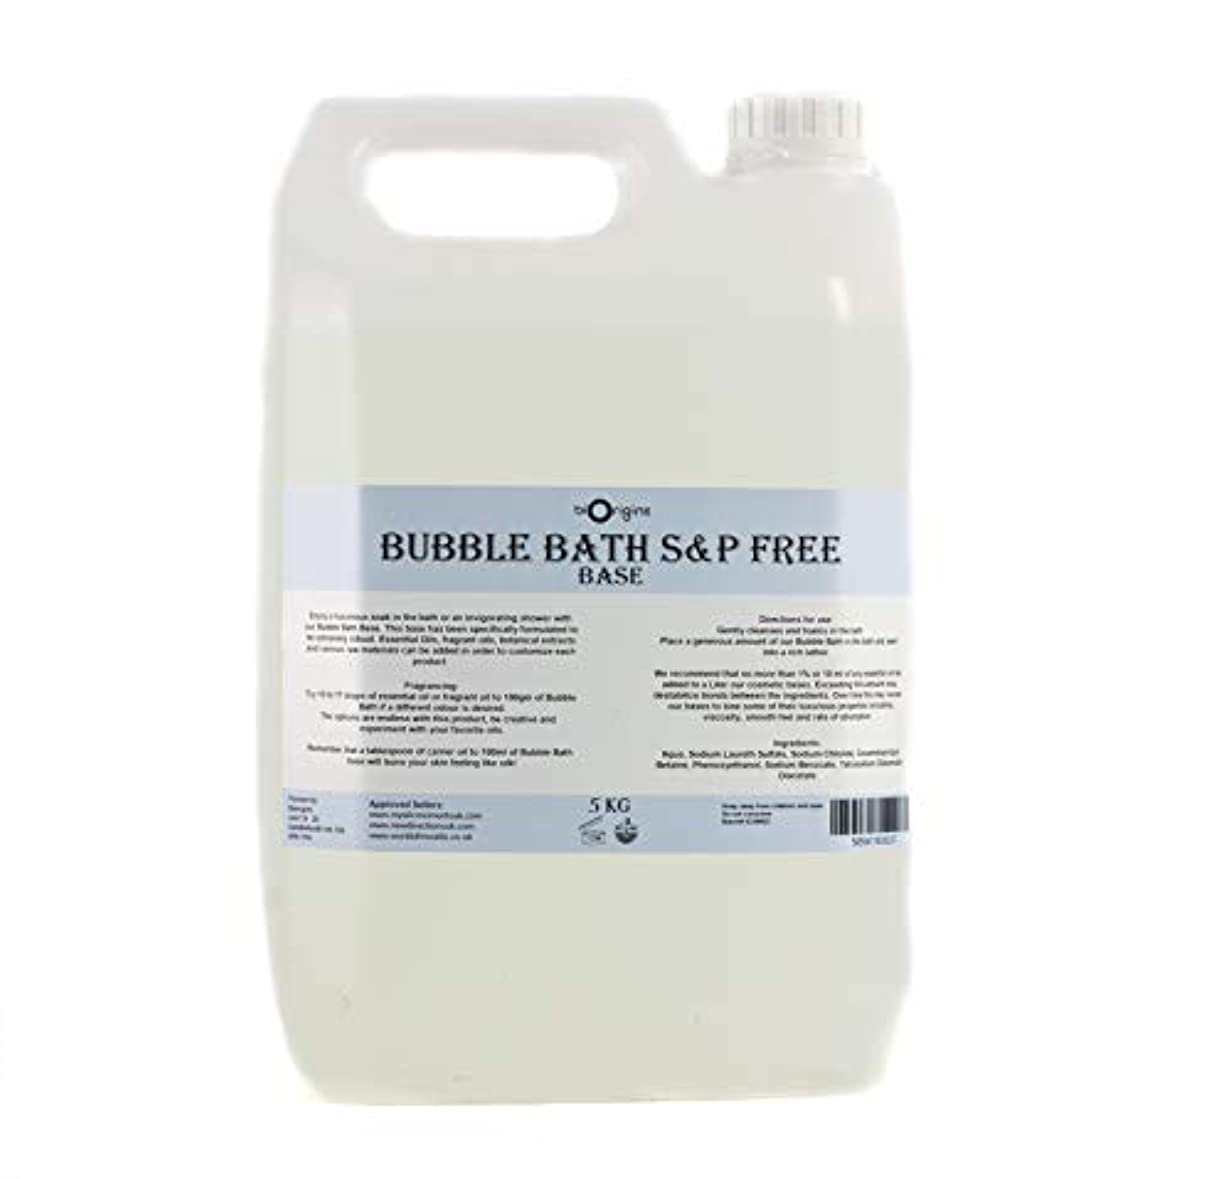 シェード日記分類するBubble Bath Base - SLS & Paraben Free - 5Kg